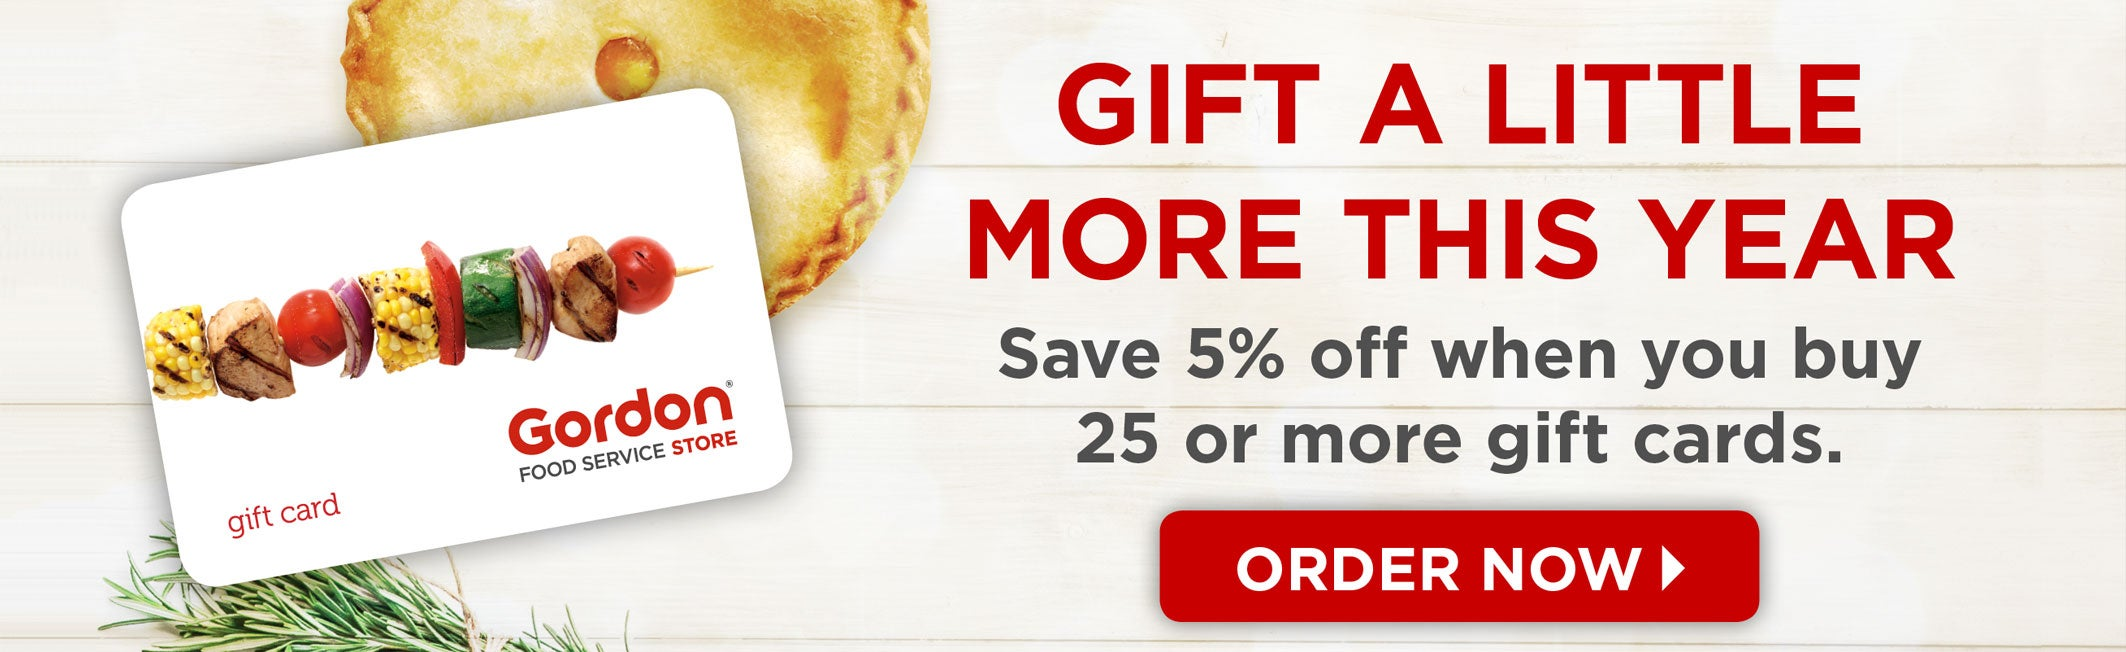 Gift a little more this year. Save 5% off when you buy 25 or more gift cards. Order Now!